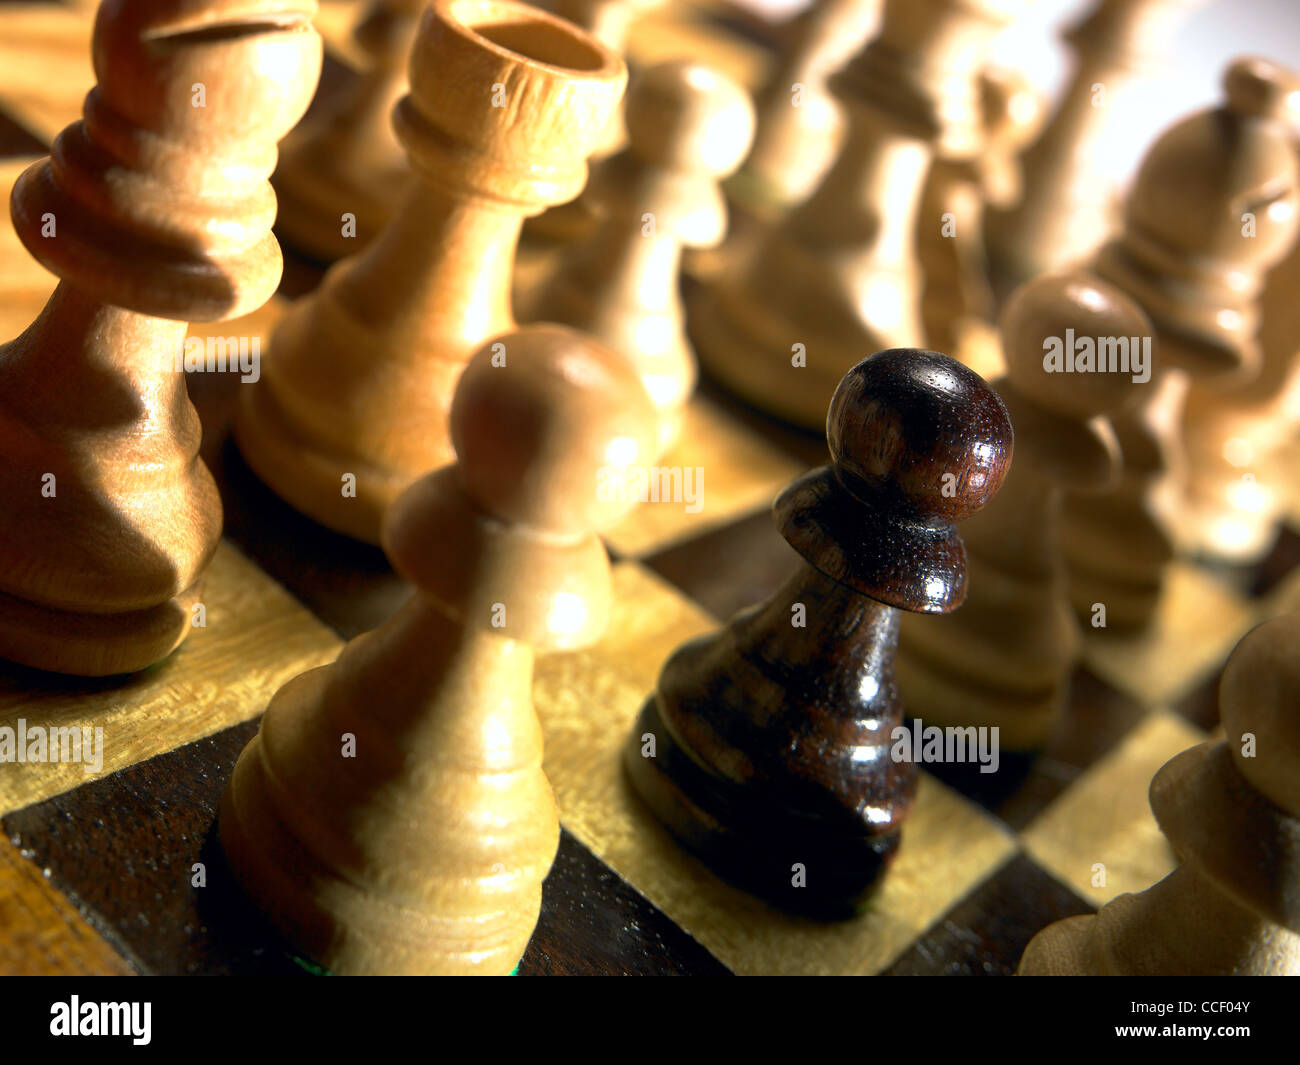 A pawn chess piece on a chessboard - Stock Image